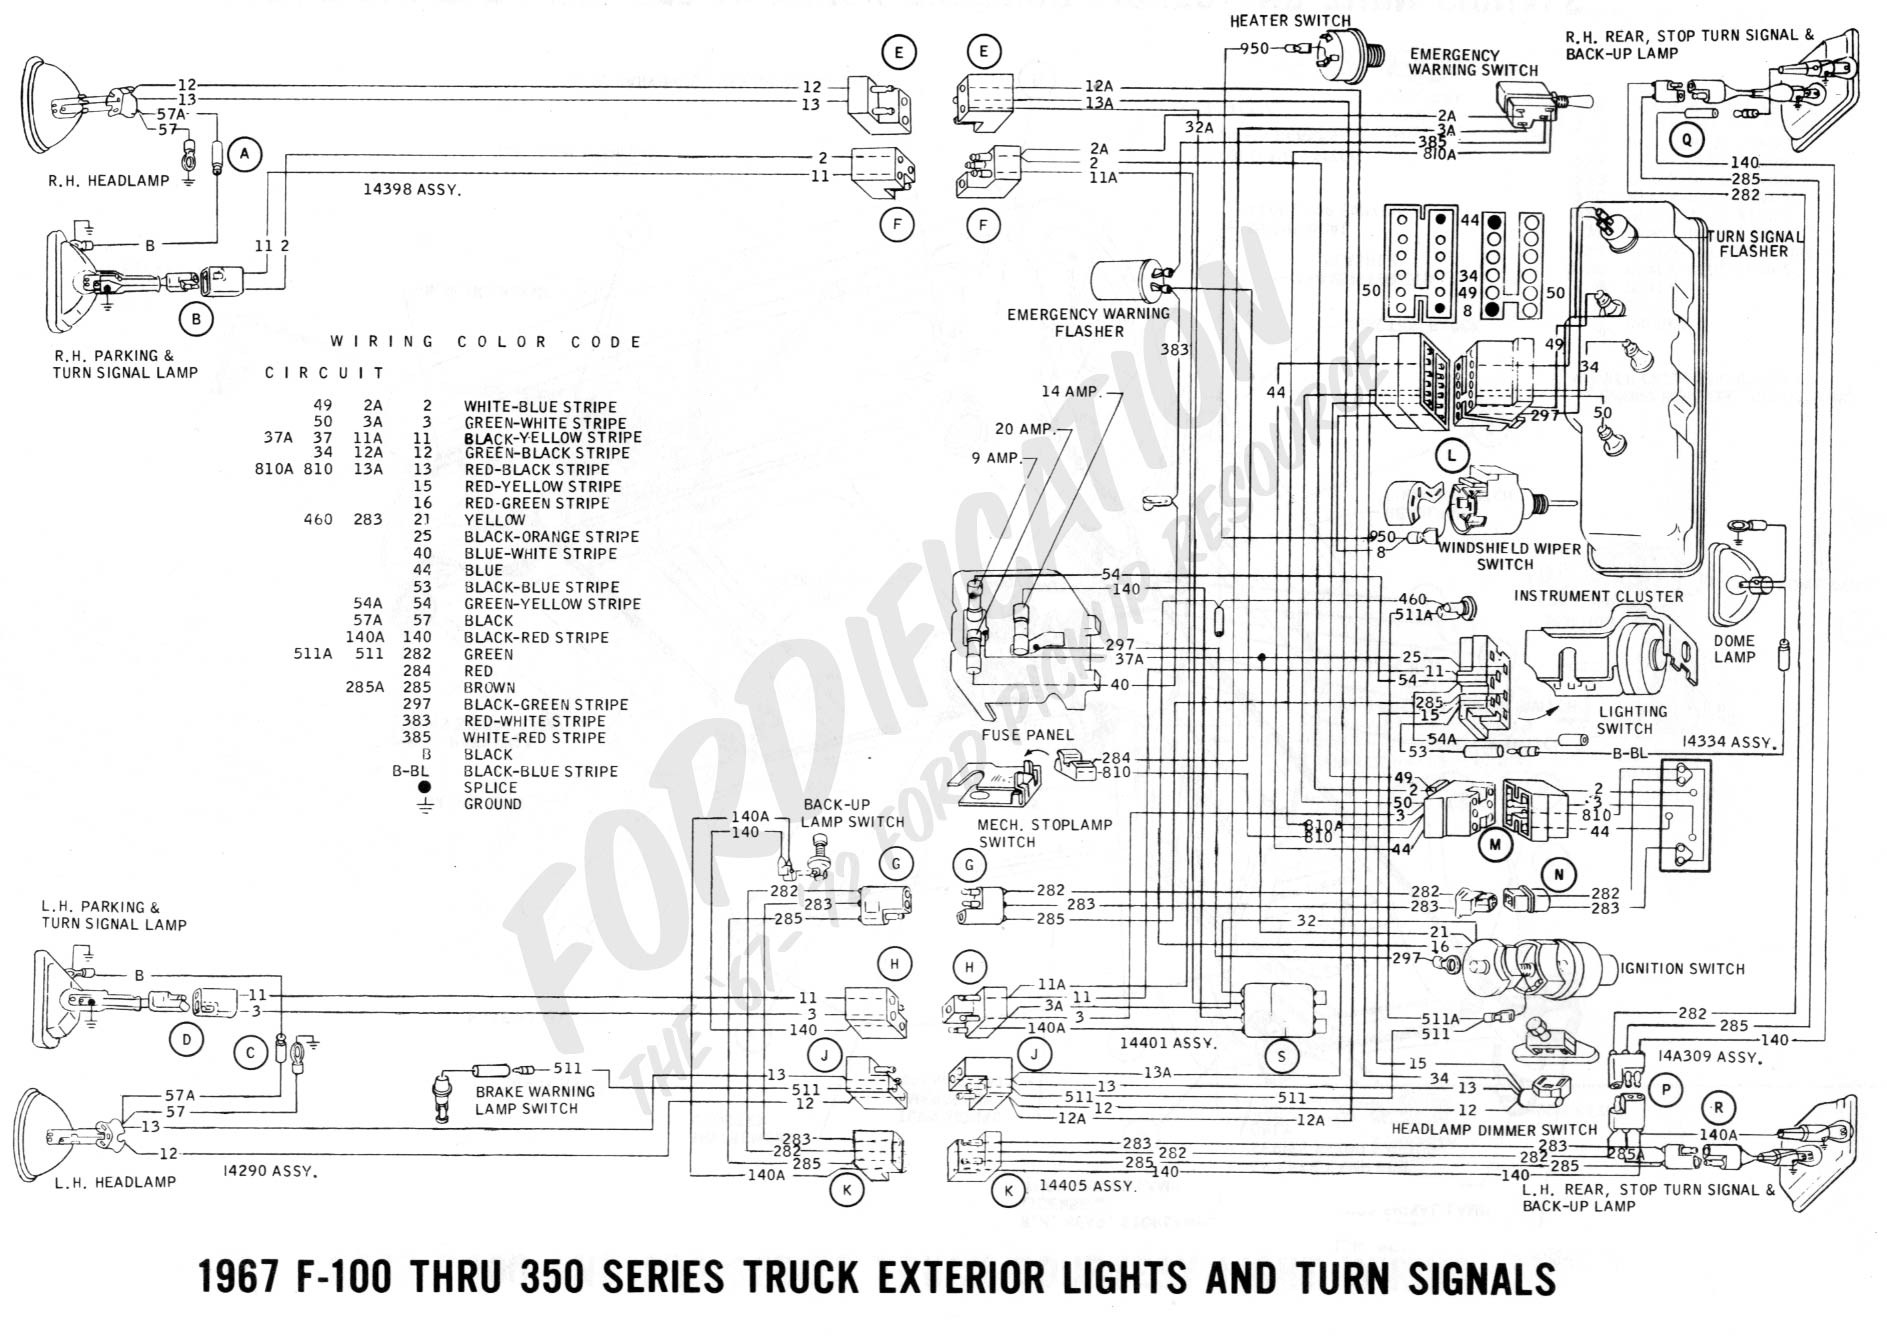 tail light wiring diagram ford f150 ford f700 wiring diagrams rh detoxicrecenze com 1990 ford f700 wiring diagram 1993 ford f700 wiring diagram